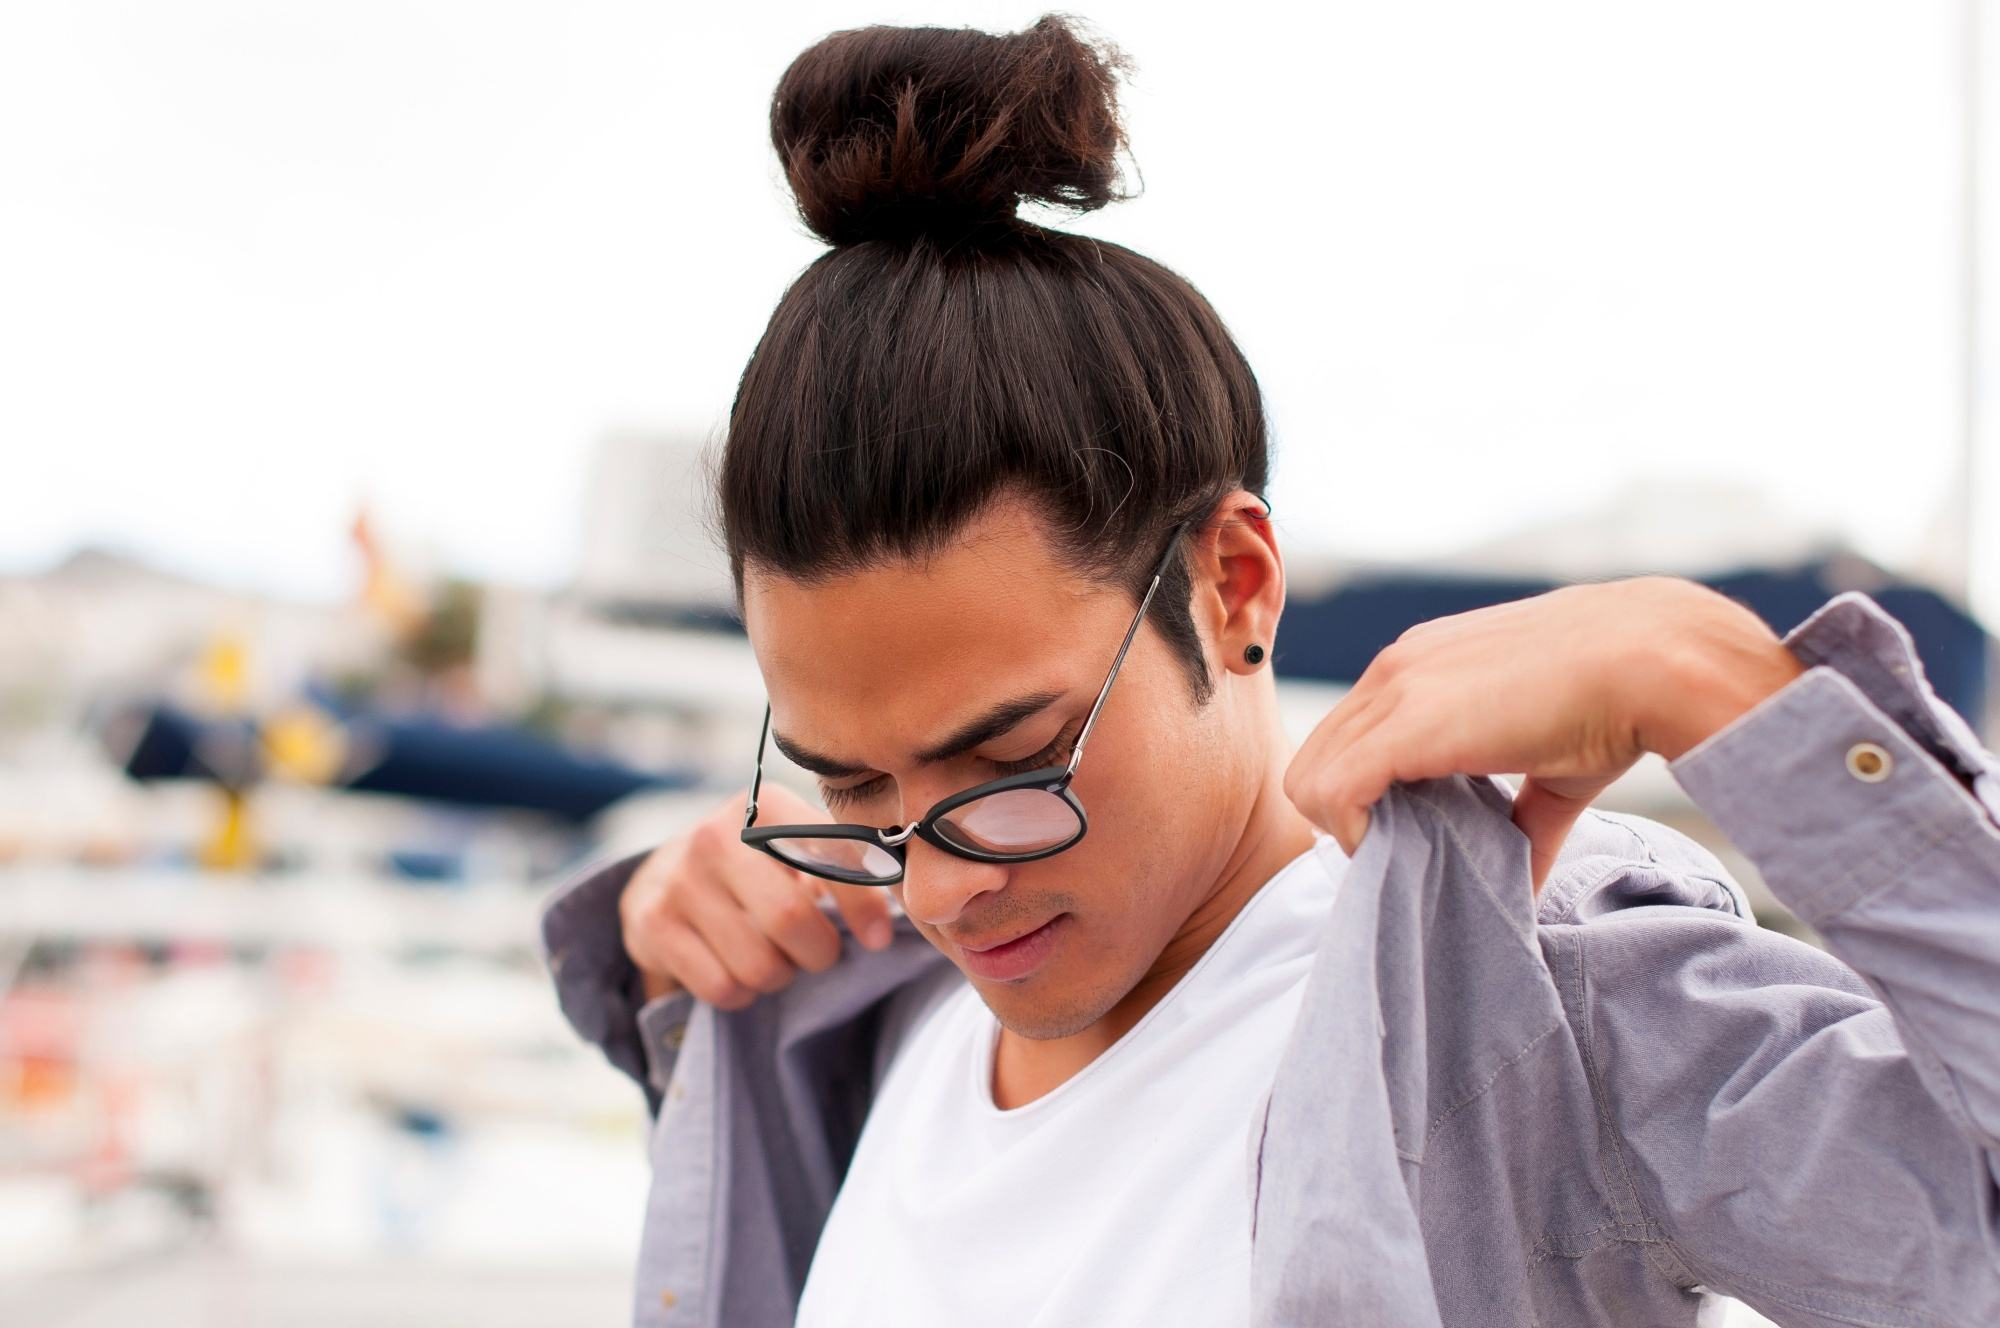 Asian man bun: Man with brown skin with long dark hair in a top knot